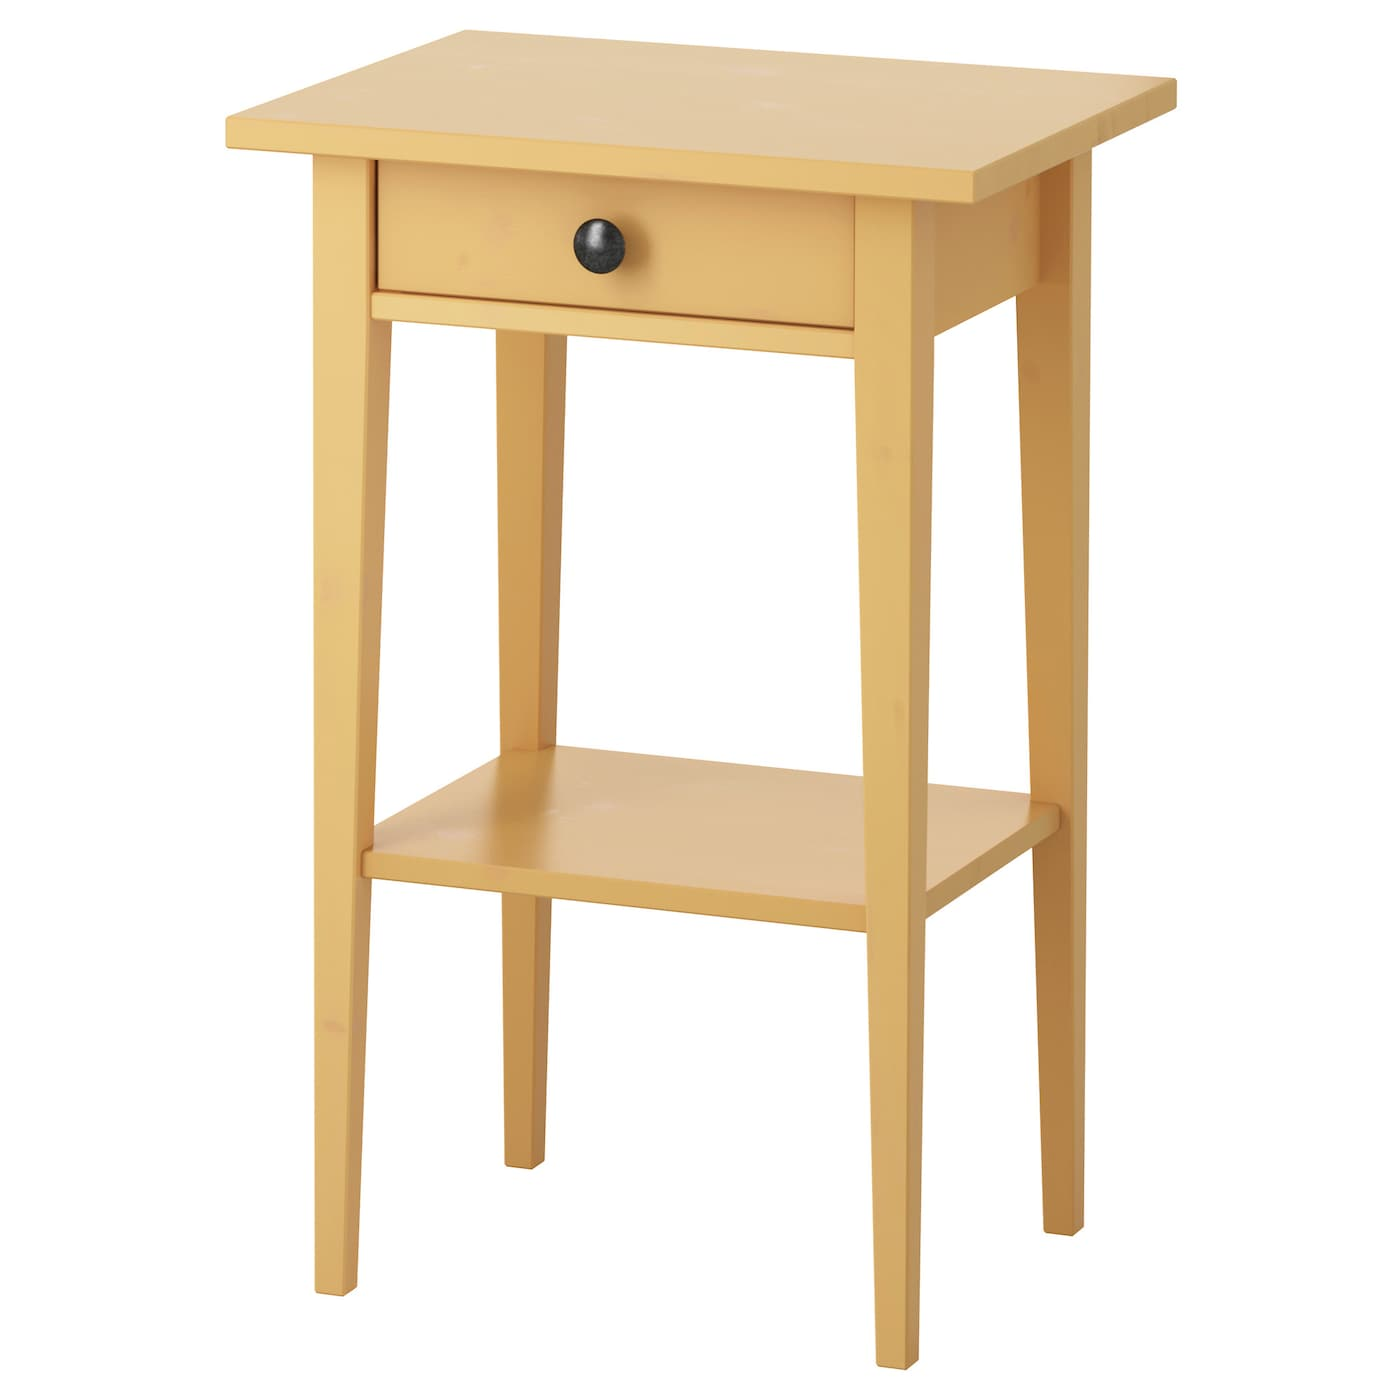 HEMNES Bedside Table Yellow 46x35 Cm IKEA